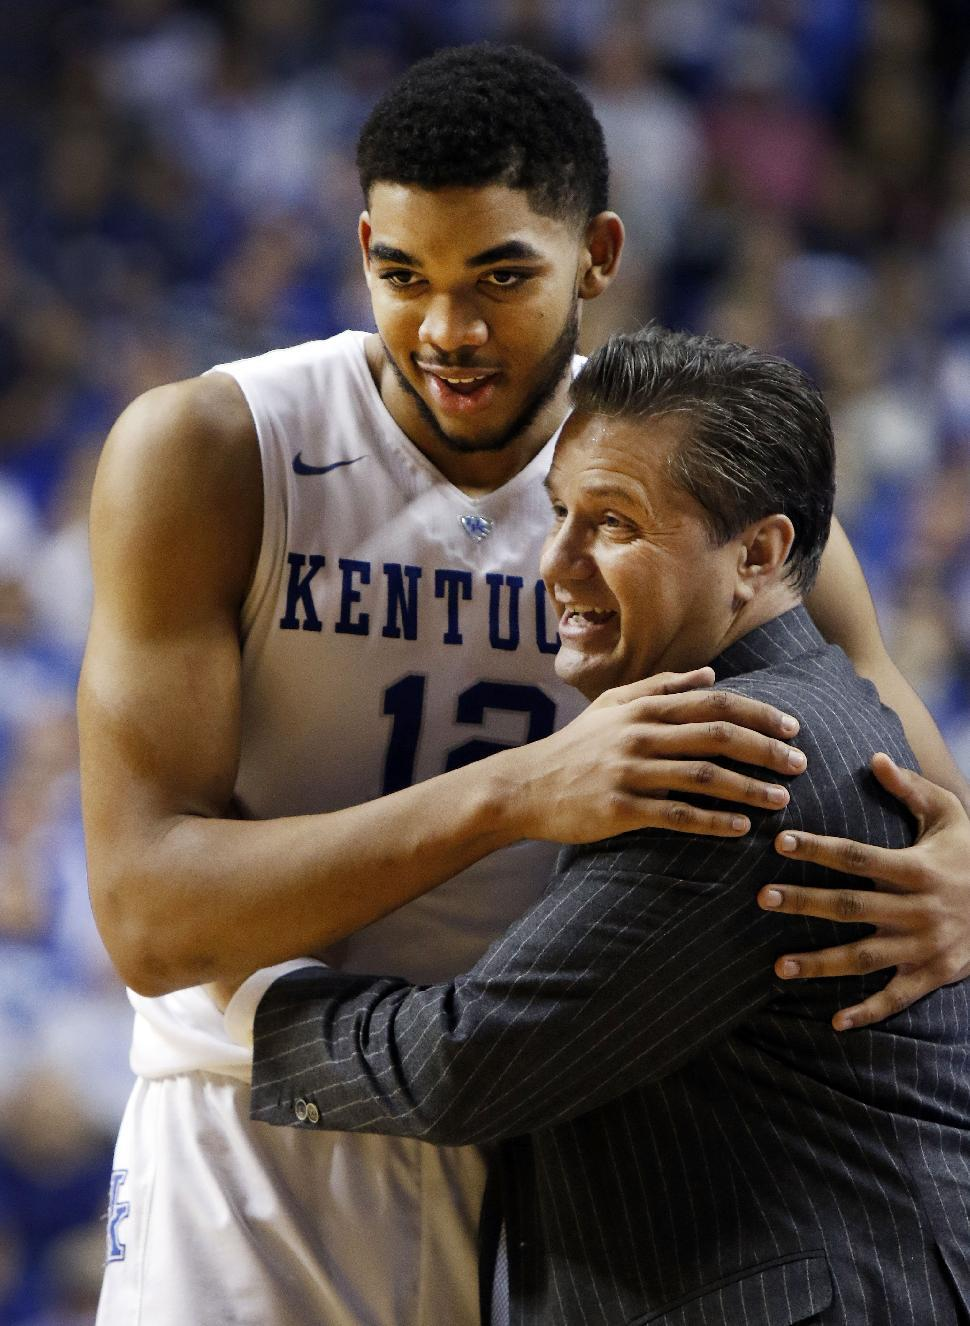 Karl-Anthony Towns plans to earn Kentucky degree online while in NBA